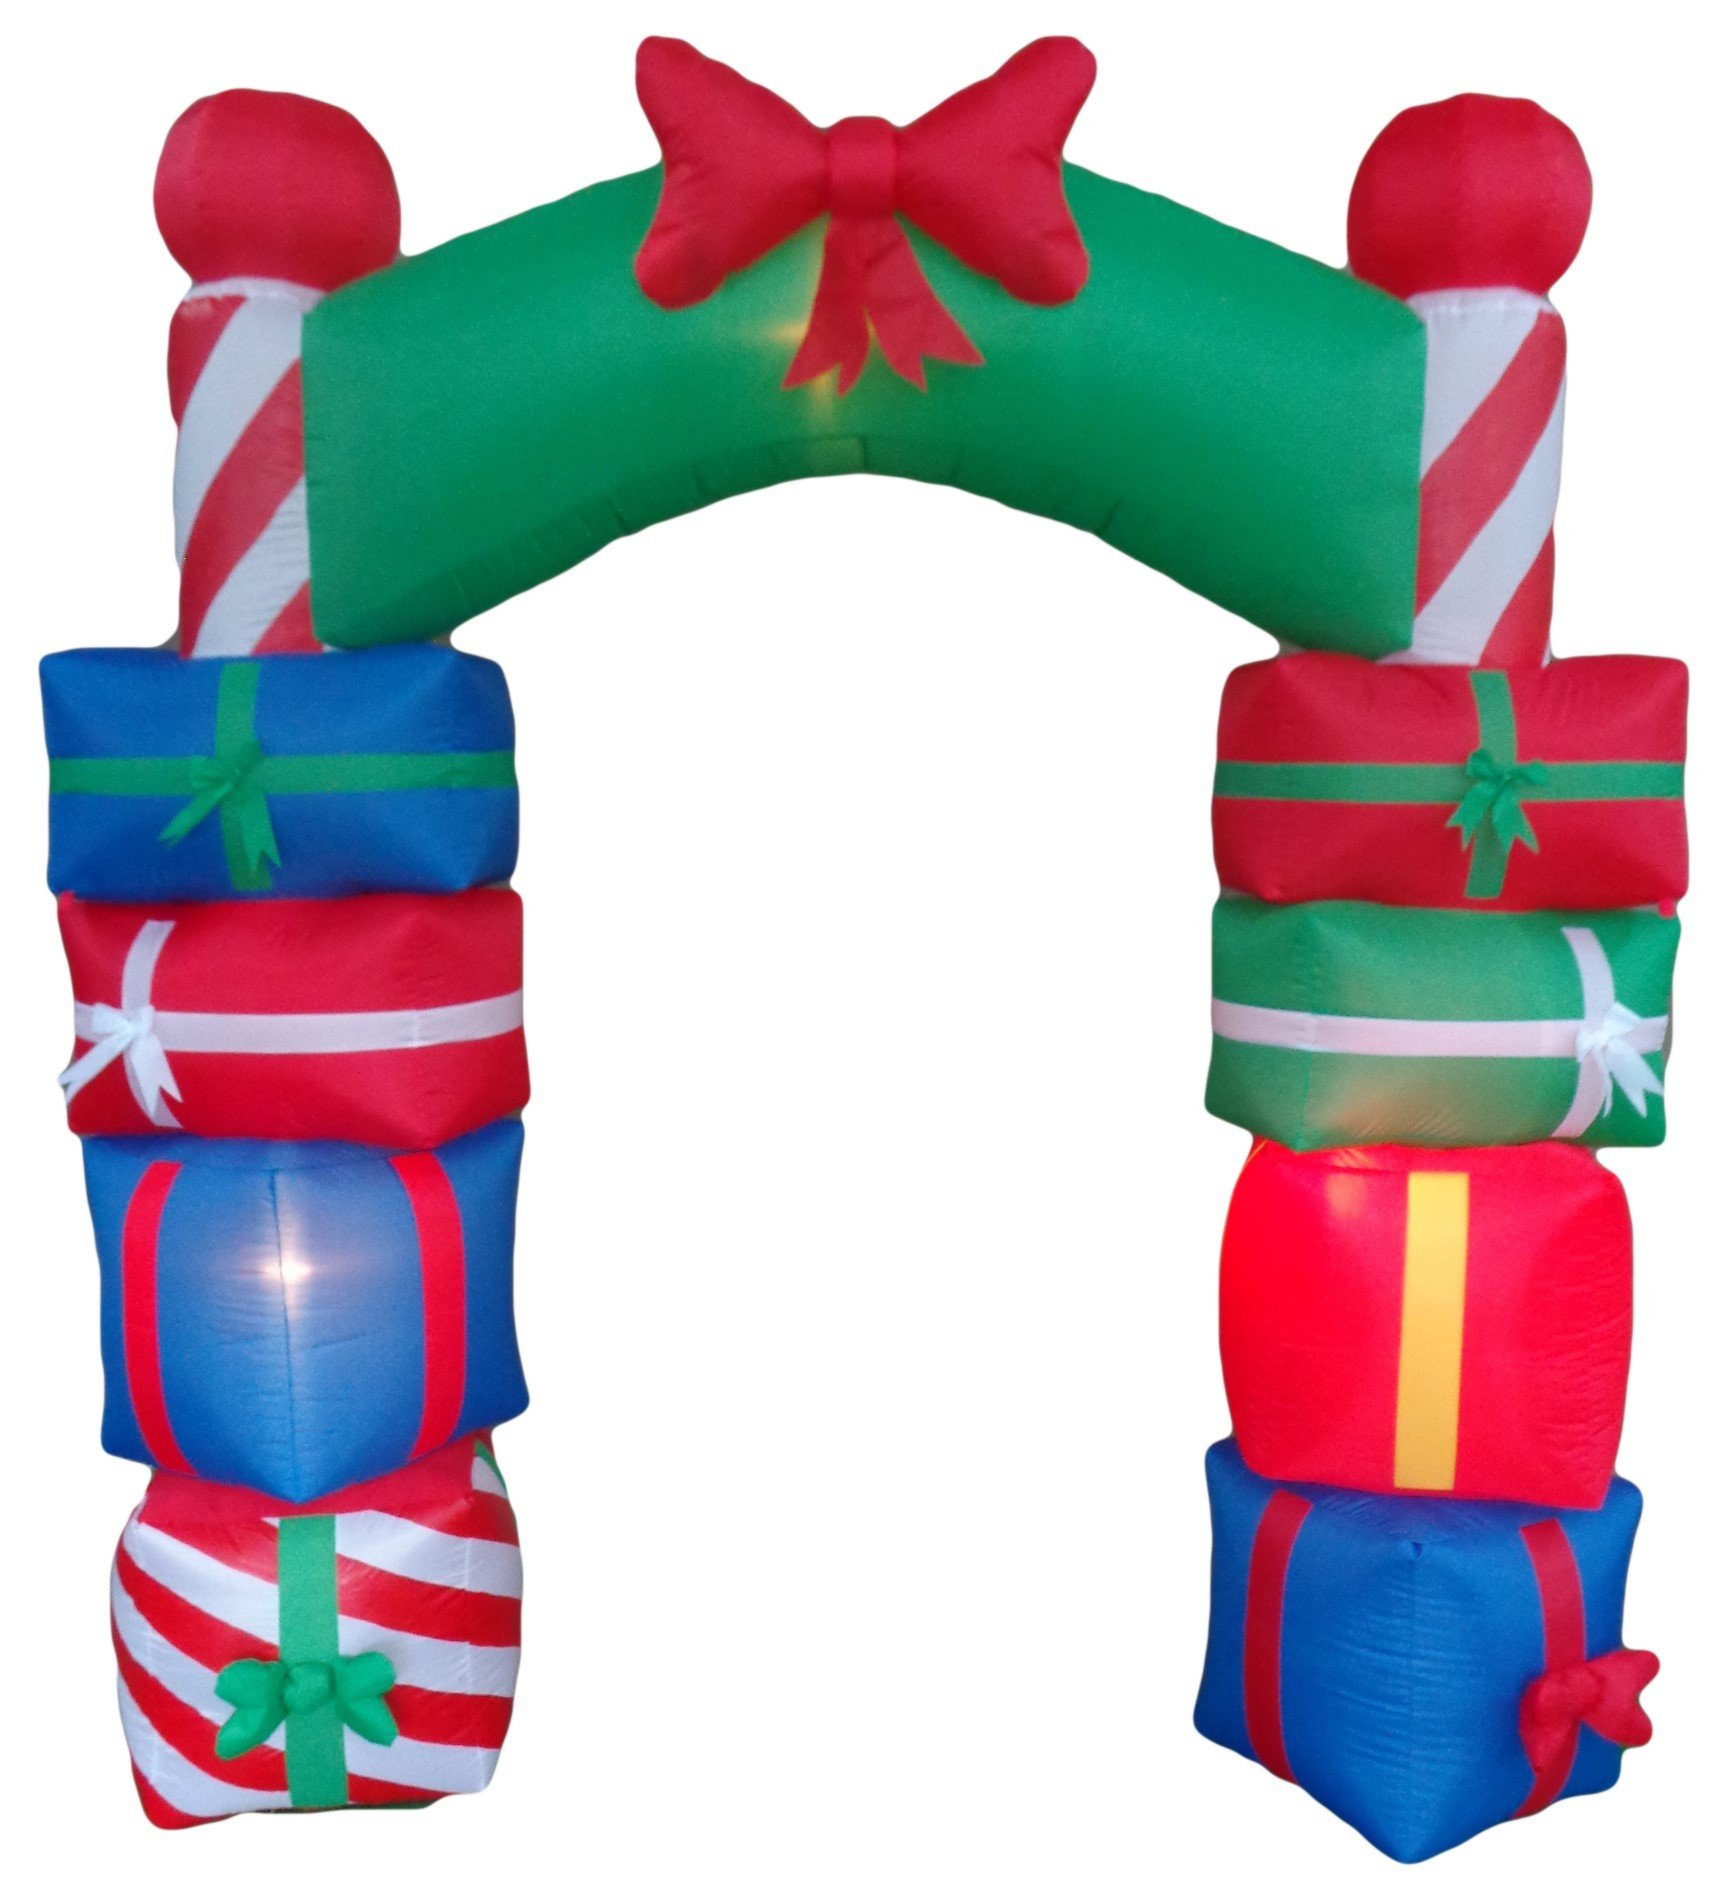 8 Foot Tall Lighted Christmas Inflatable Stacked Colorful Gift Boxes Archway with Red Bow Party Yard Decoration